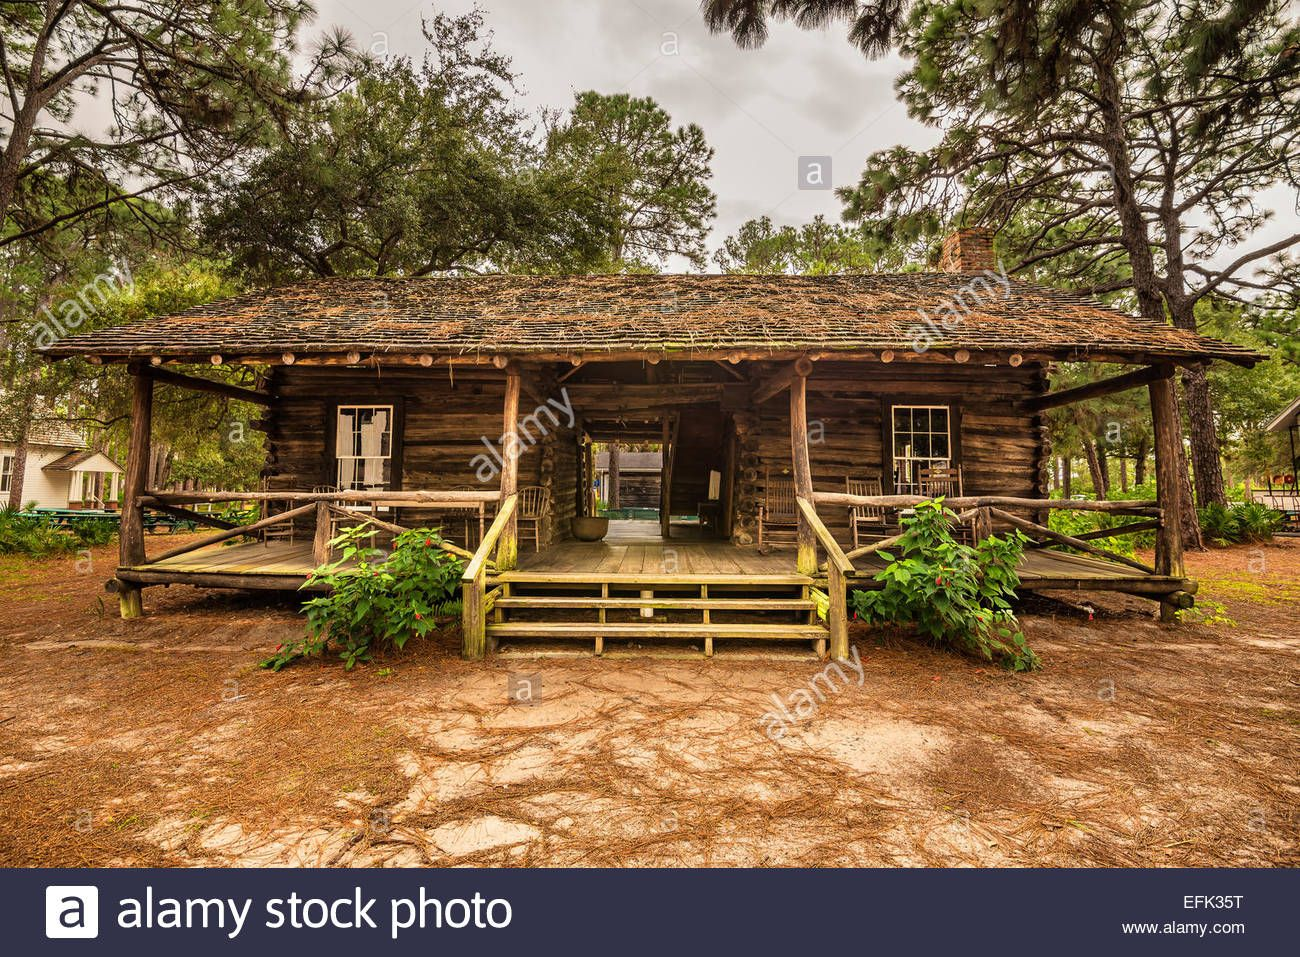 Download This Stock Image Mcmullen Coachman Log House In The